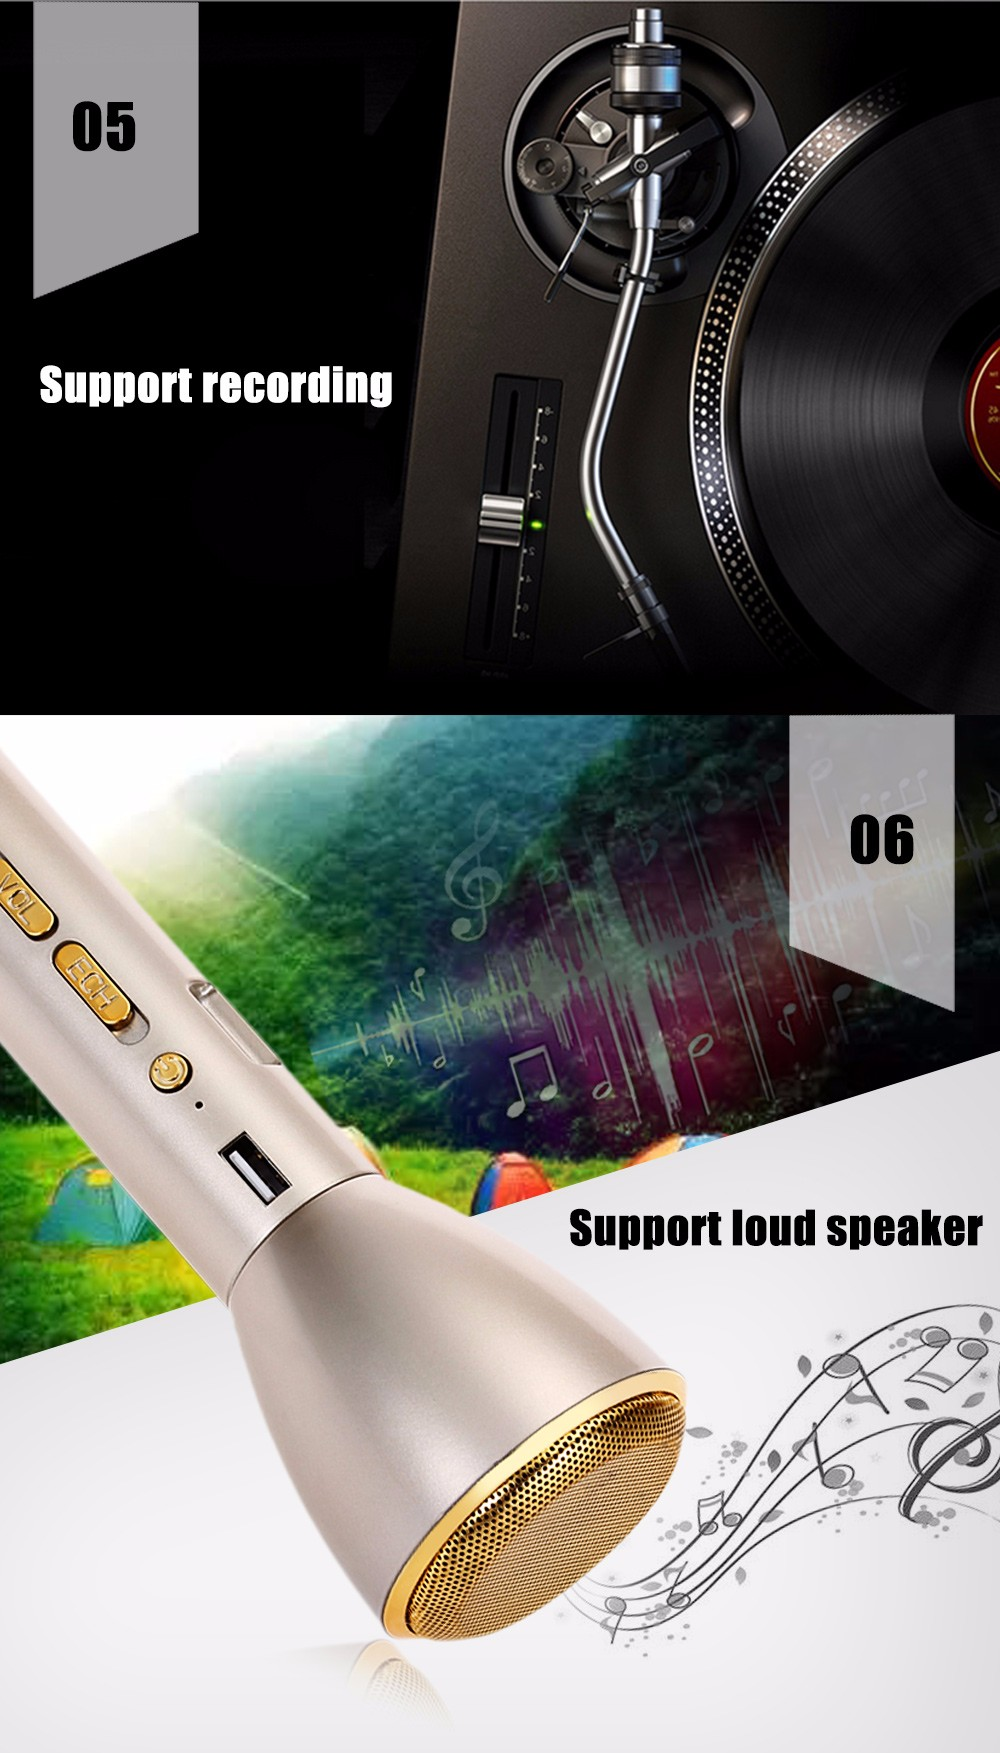 TRANGU K088 Multifunction Portable Bluetooth Wireless Speaker Mono Handheld Microphone